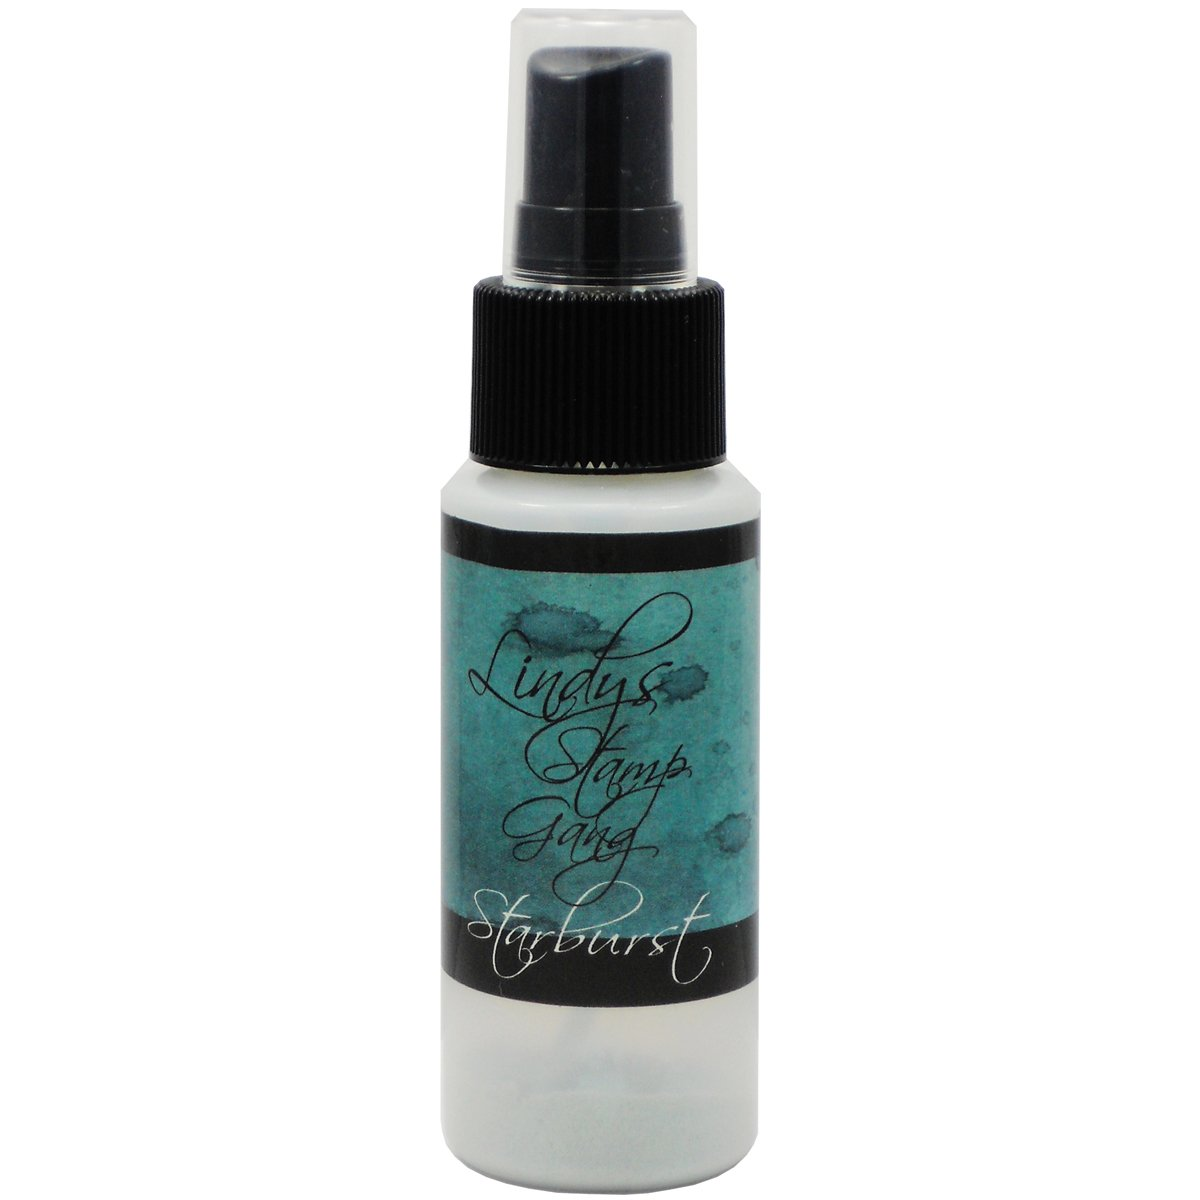 Lindy's Stamp Gang Starburst Spray 2oz Bottle-Tainted Love Teal, Other, Multicoloured Notions Marketing 398803